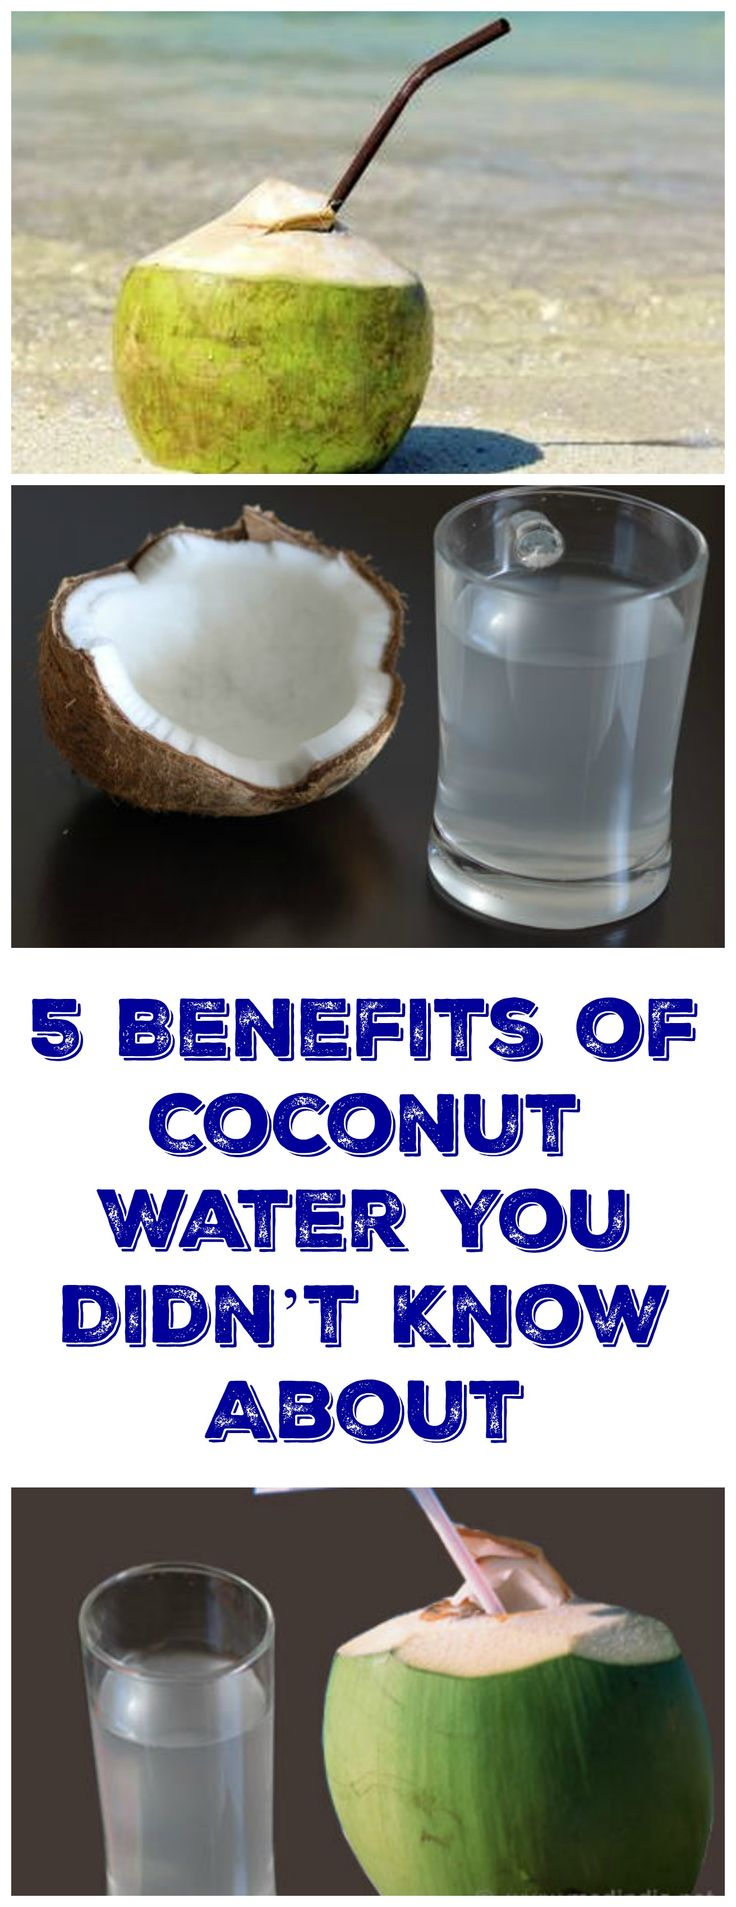 5 Benefits of Coconut Water You Didn't Know About | BiutiDIY